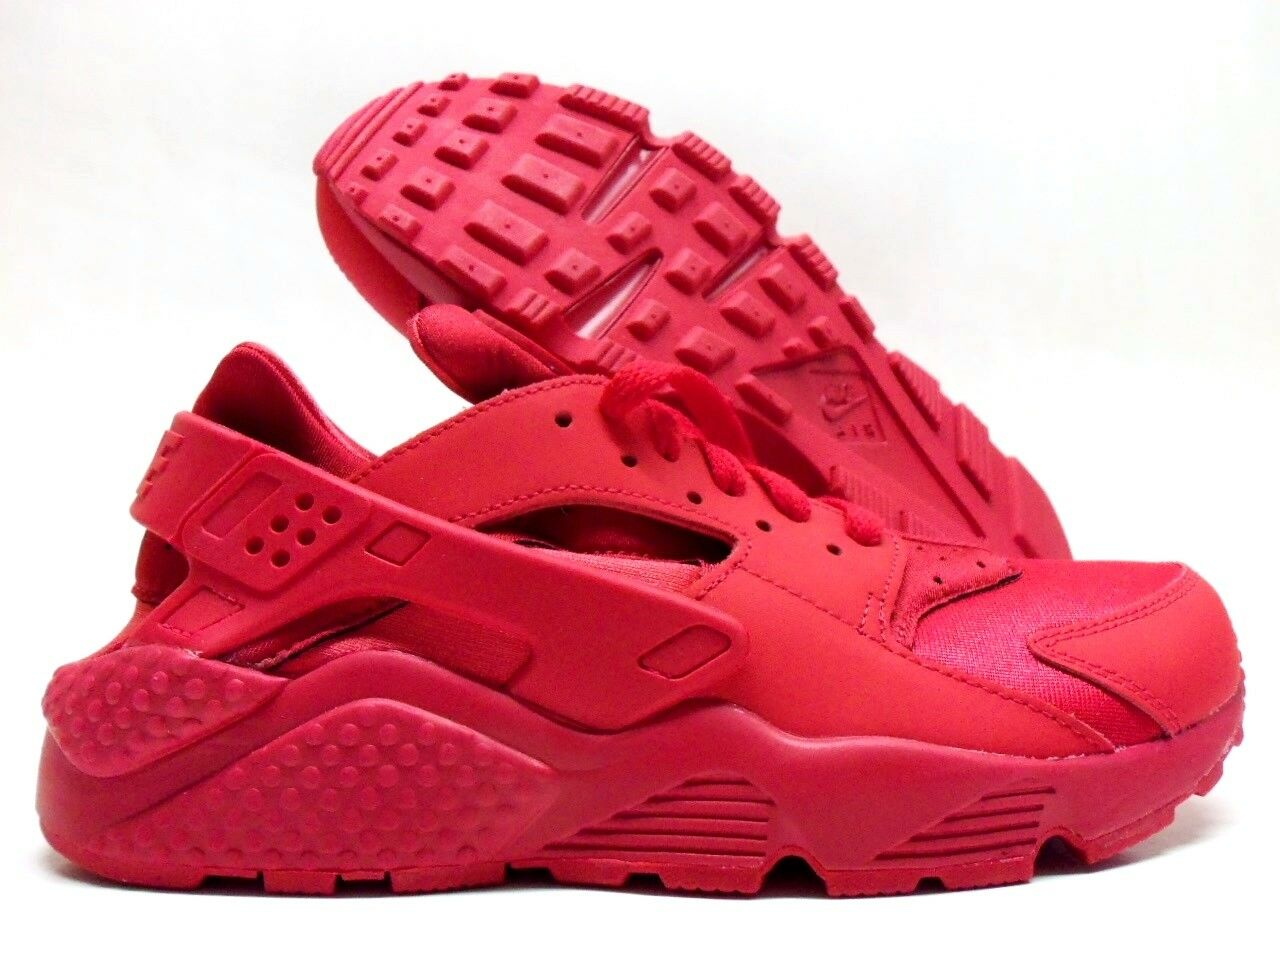 NIKE AIR HUARACHE ID  RED OCTOBER  RED SIZE WOMEN'S 11.5 MEN 10 [777331-978]